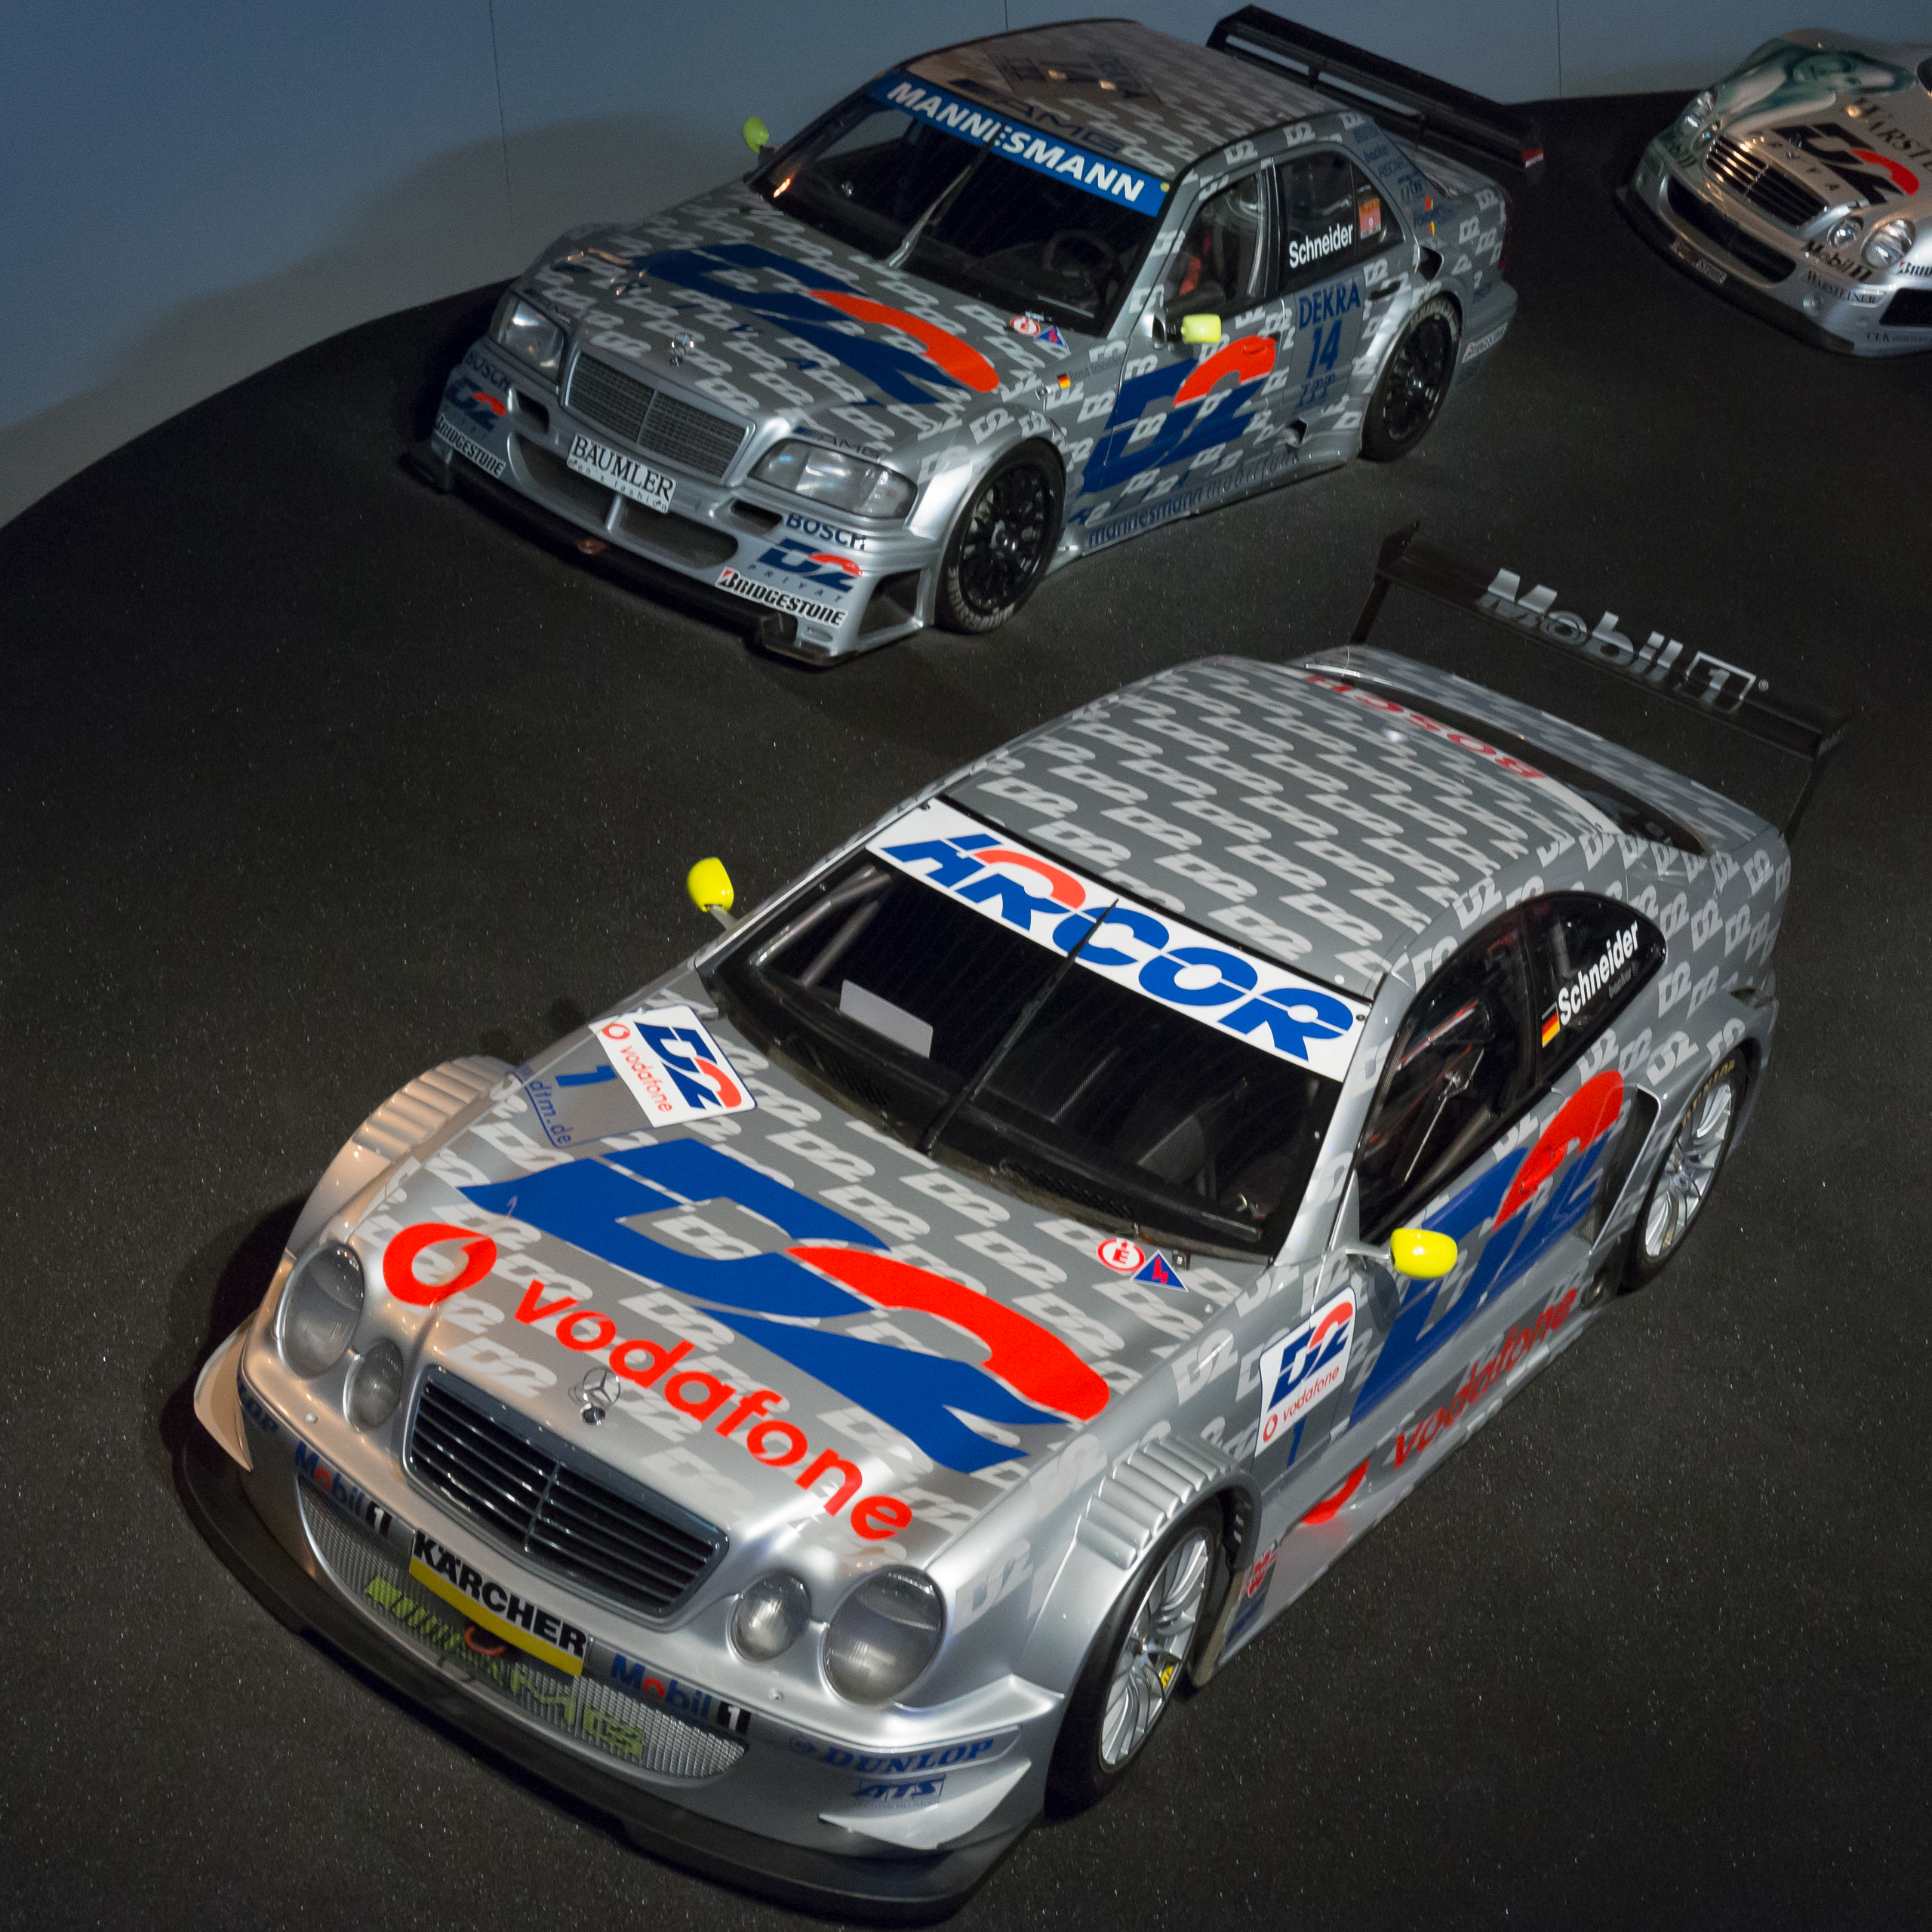 File:AMG Mercedes CLK-Class (C208) DTM and C-Class (W202